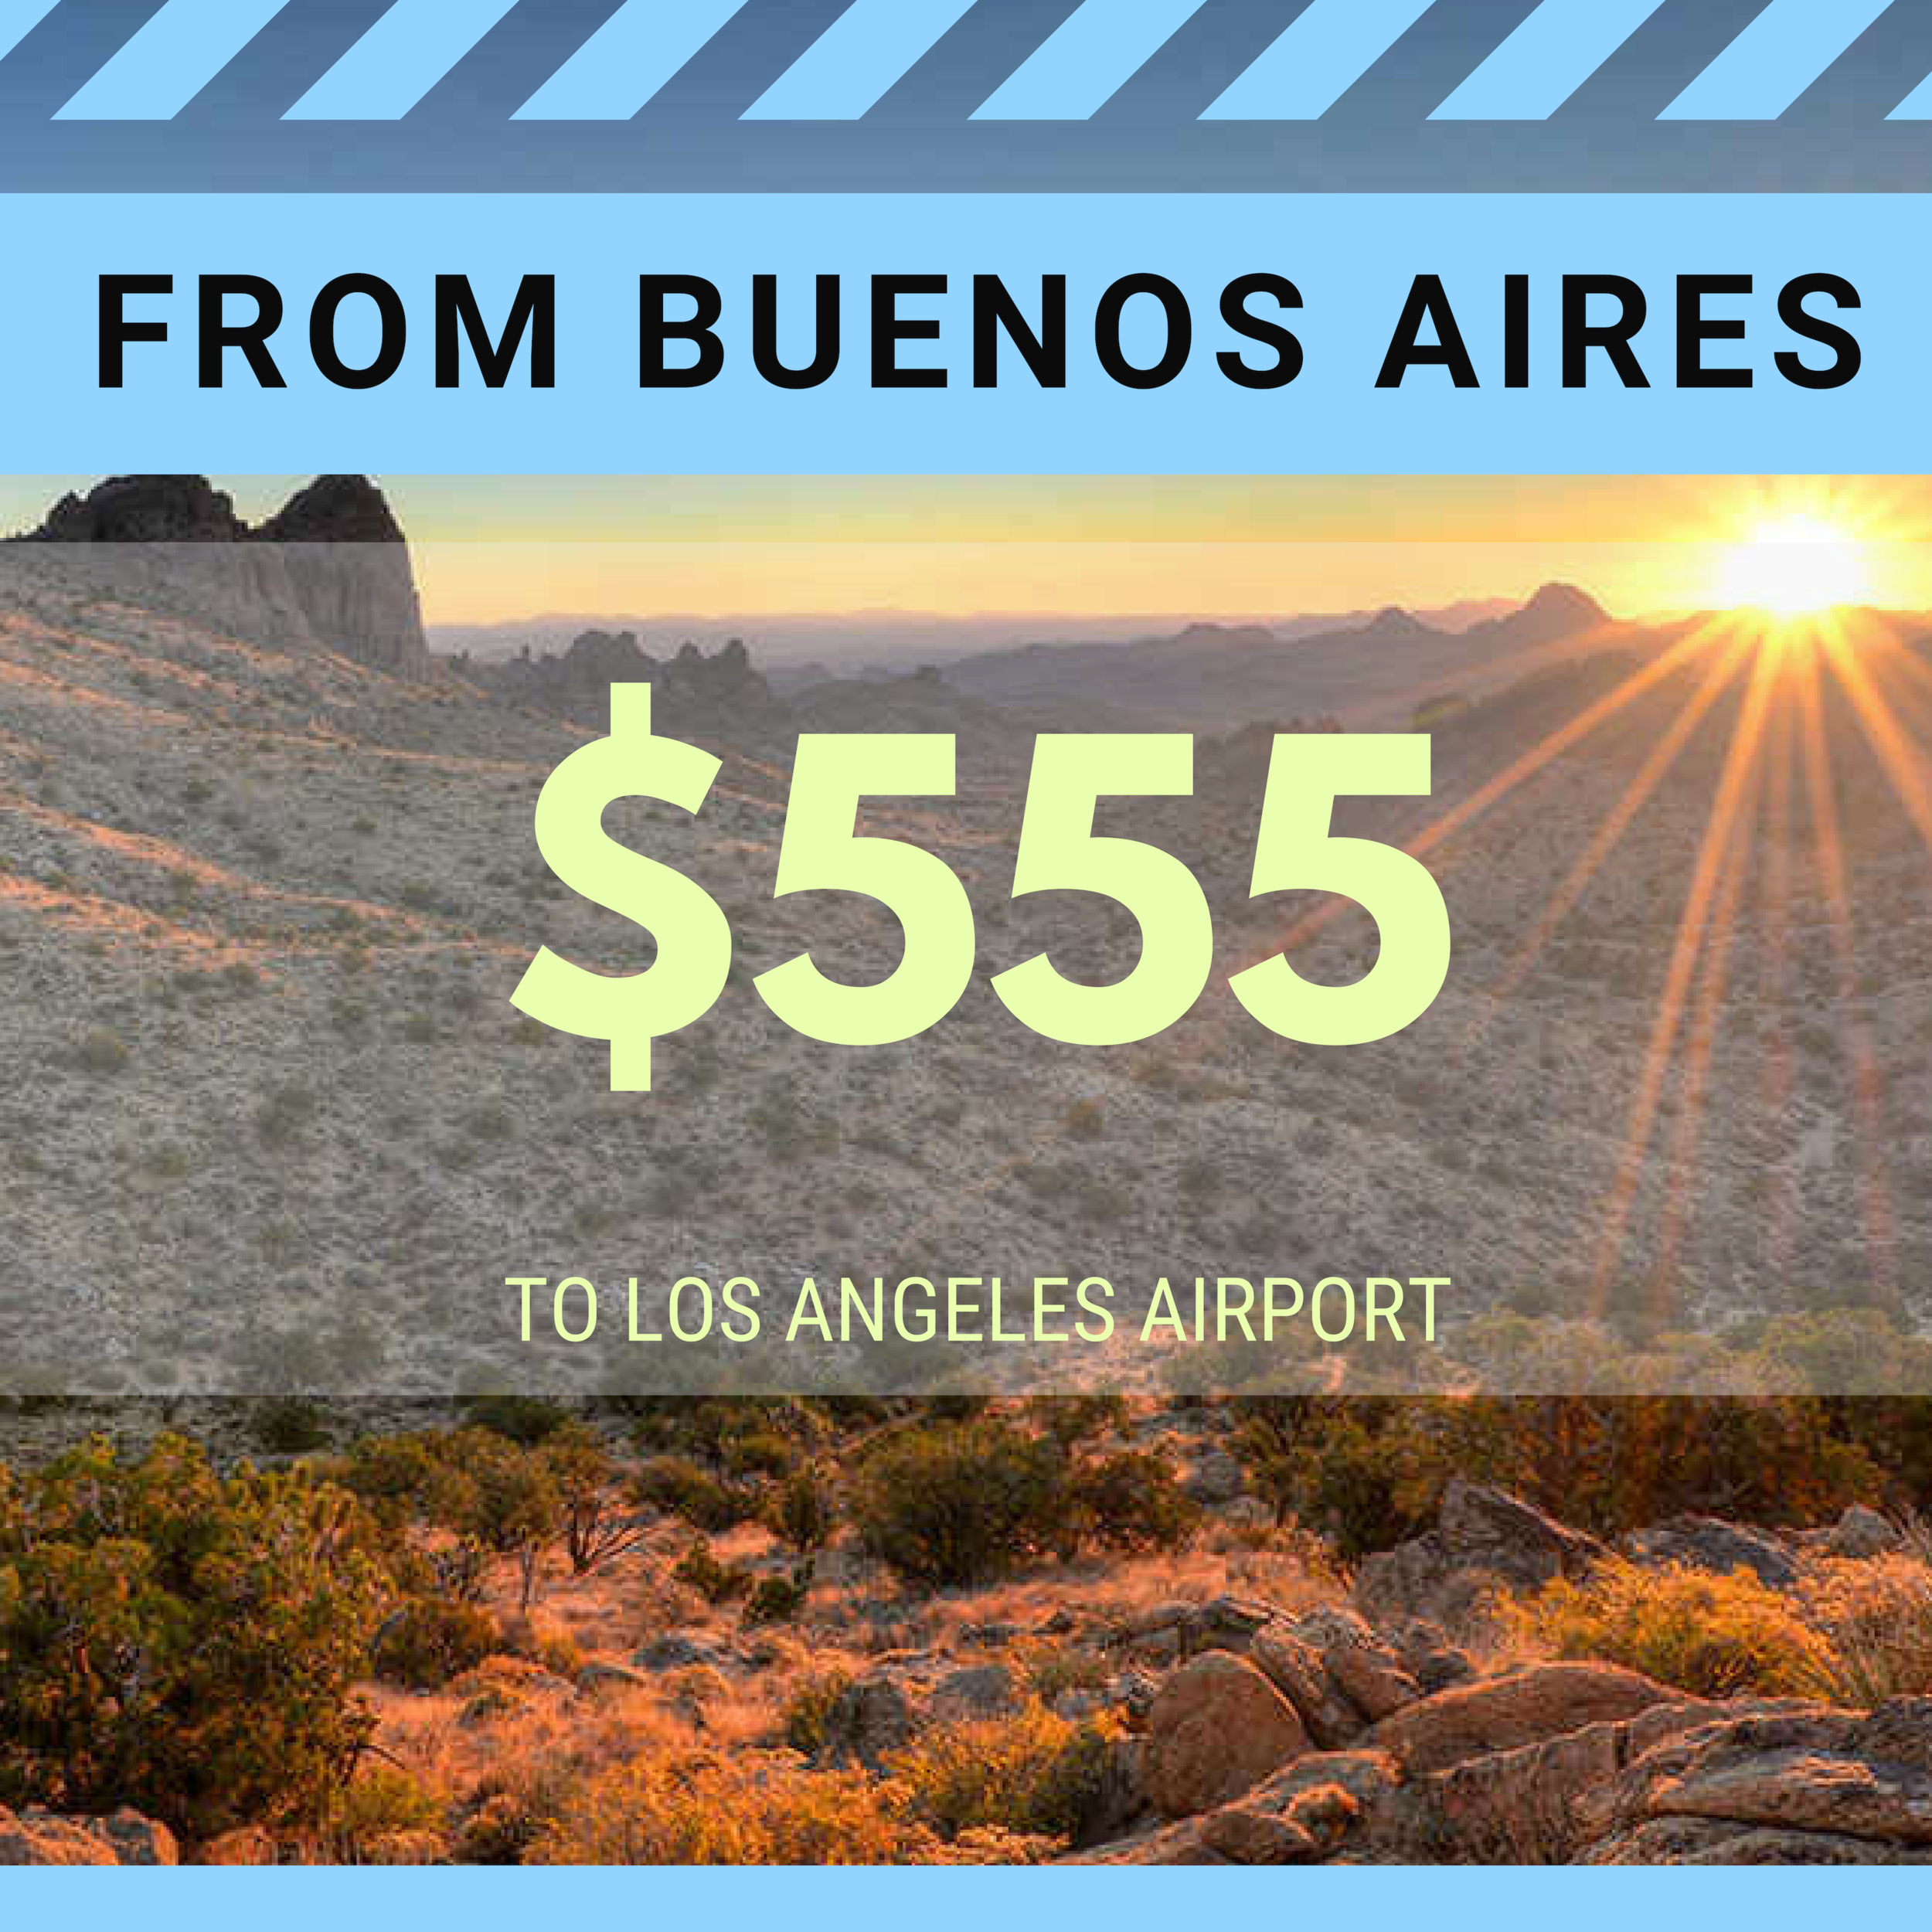 FROM BUENOS AIRES TO LAX